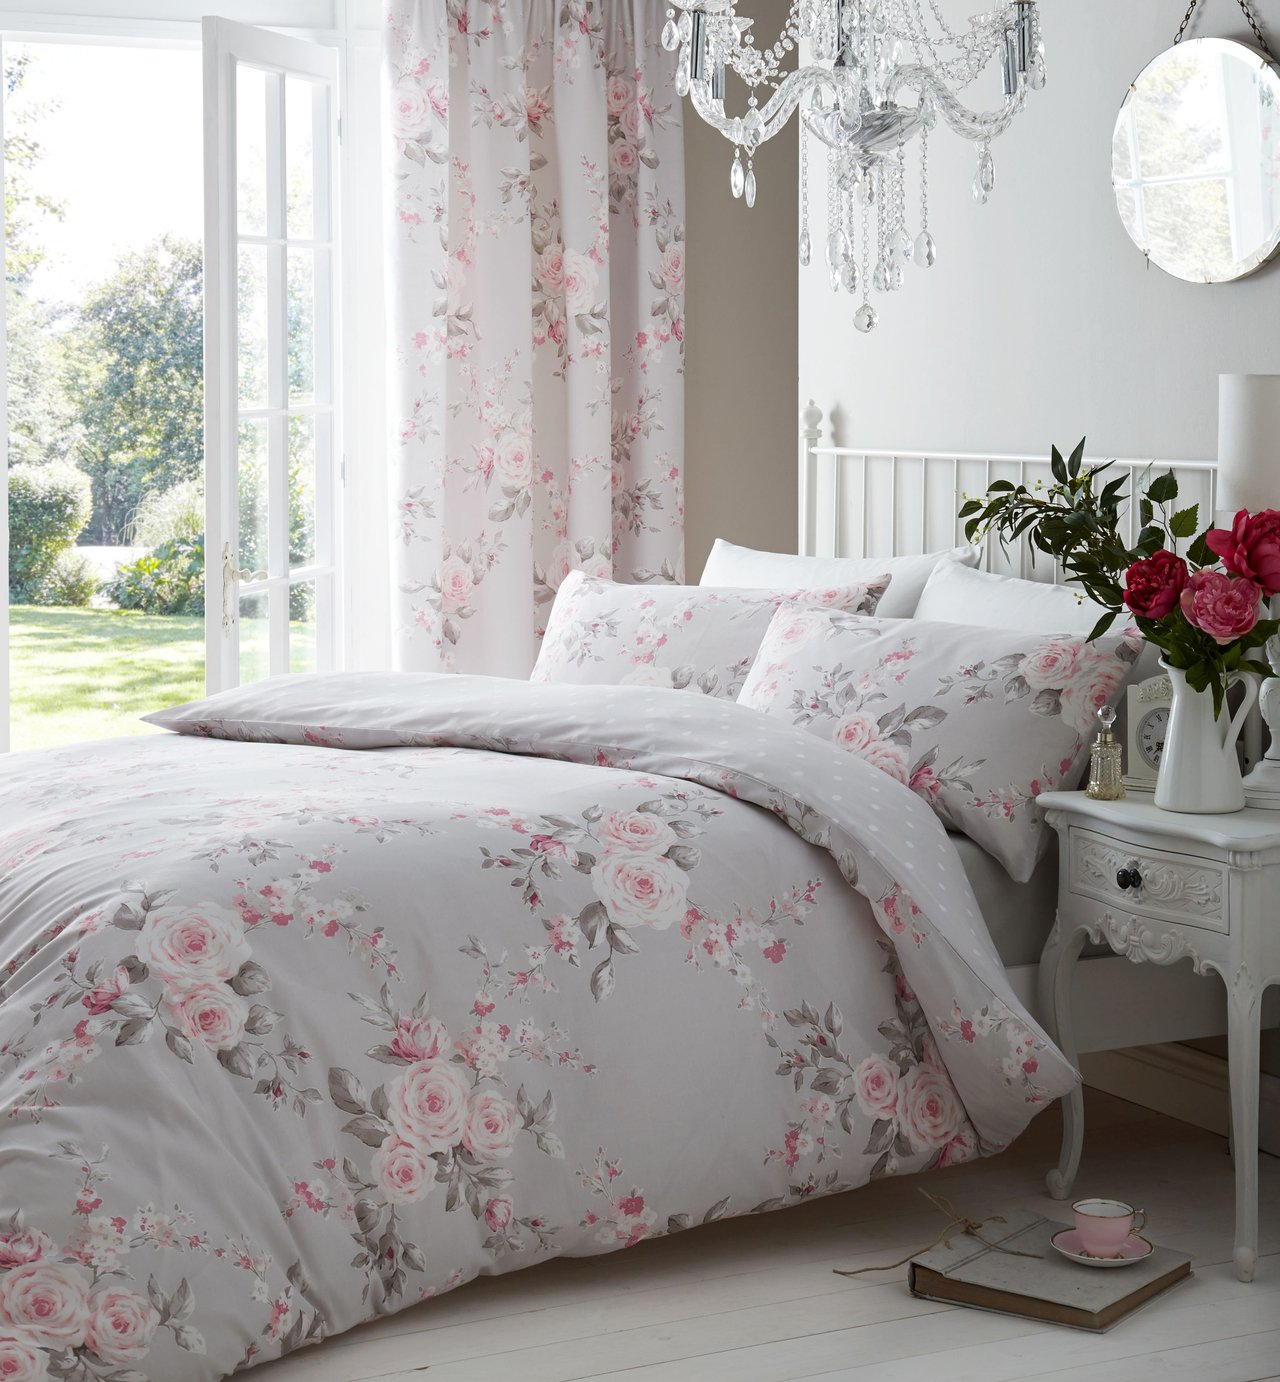 Catherine Lansfield Find Offers Online And Compare Prices At Esprit Quilt Cover Set Geo Astec Super King Size Canterbury Floral Bedding Double Pink From